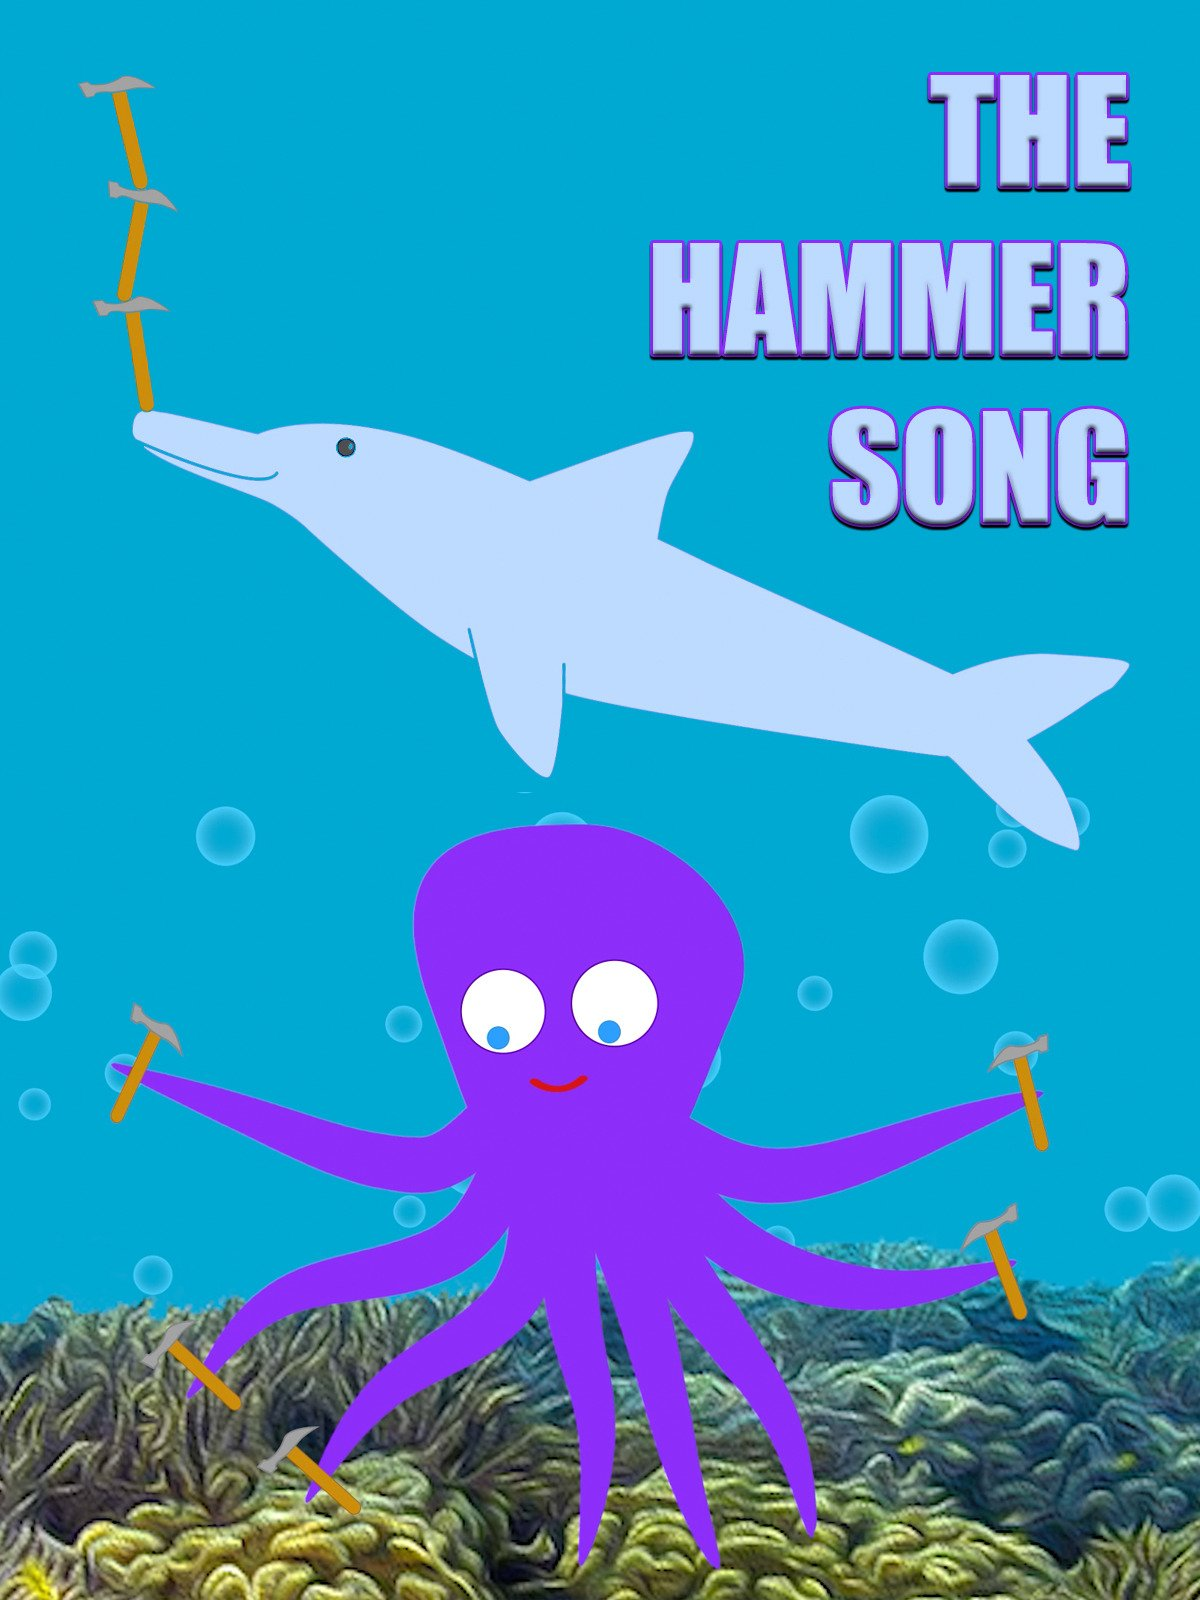 The Hammer Song